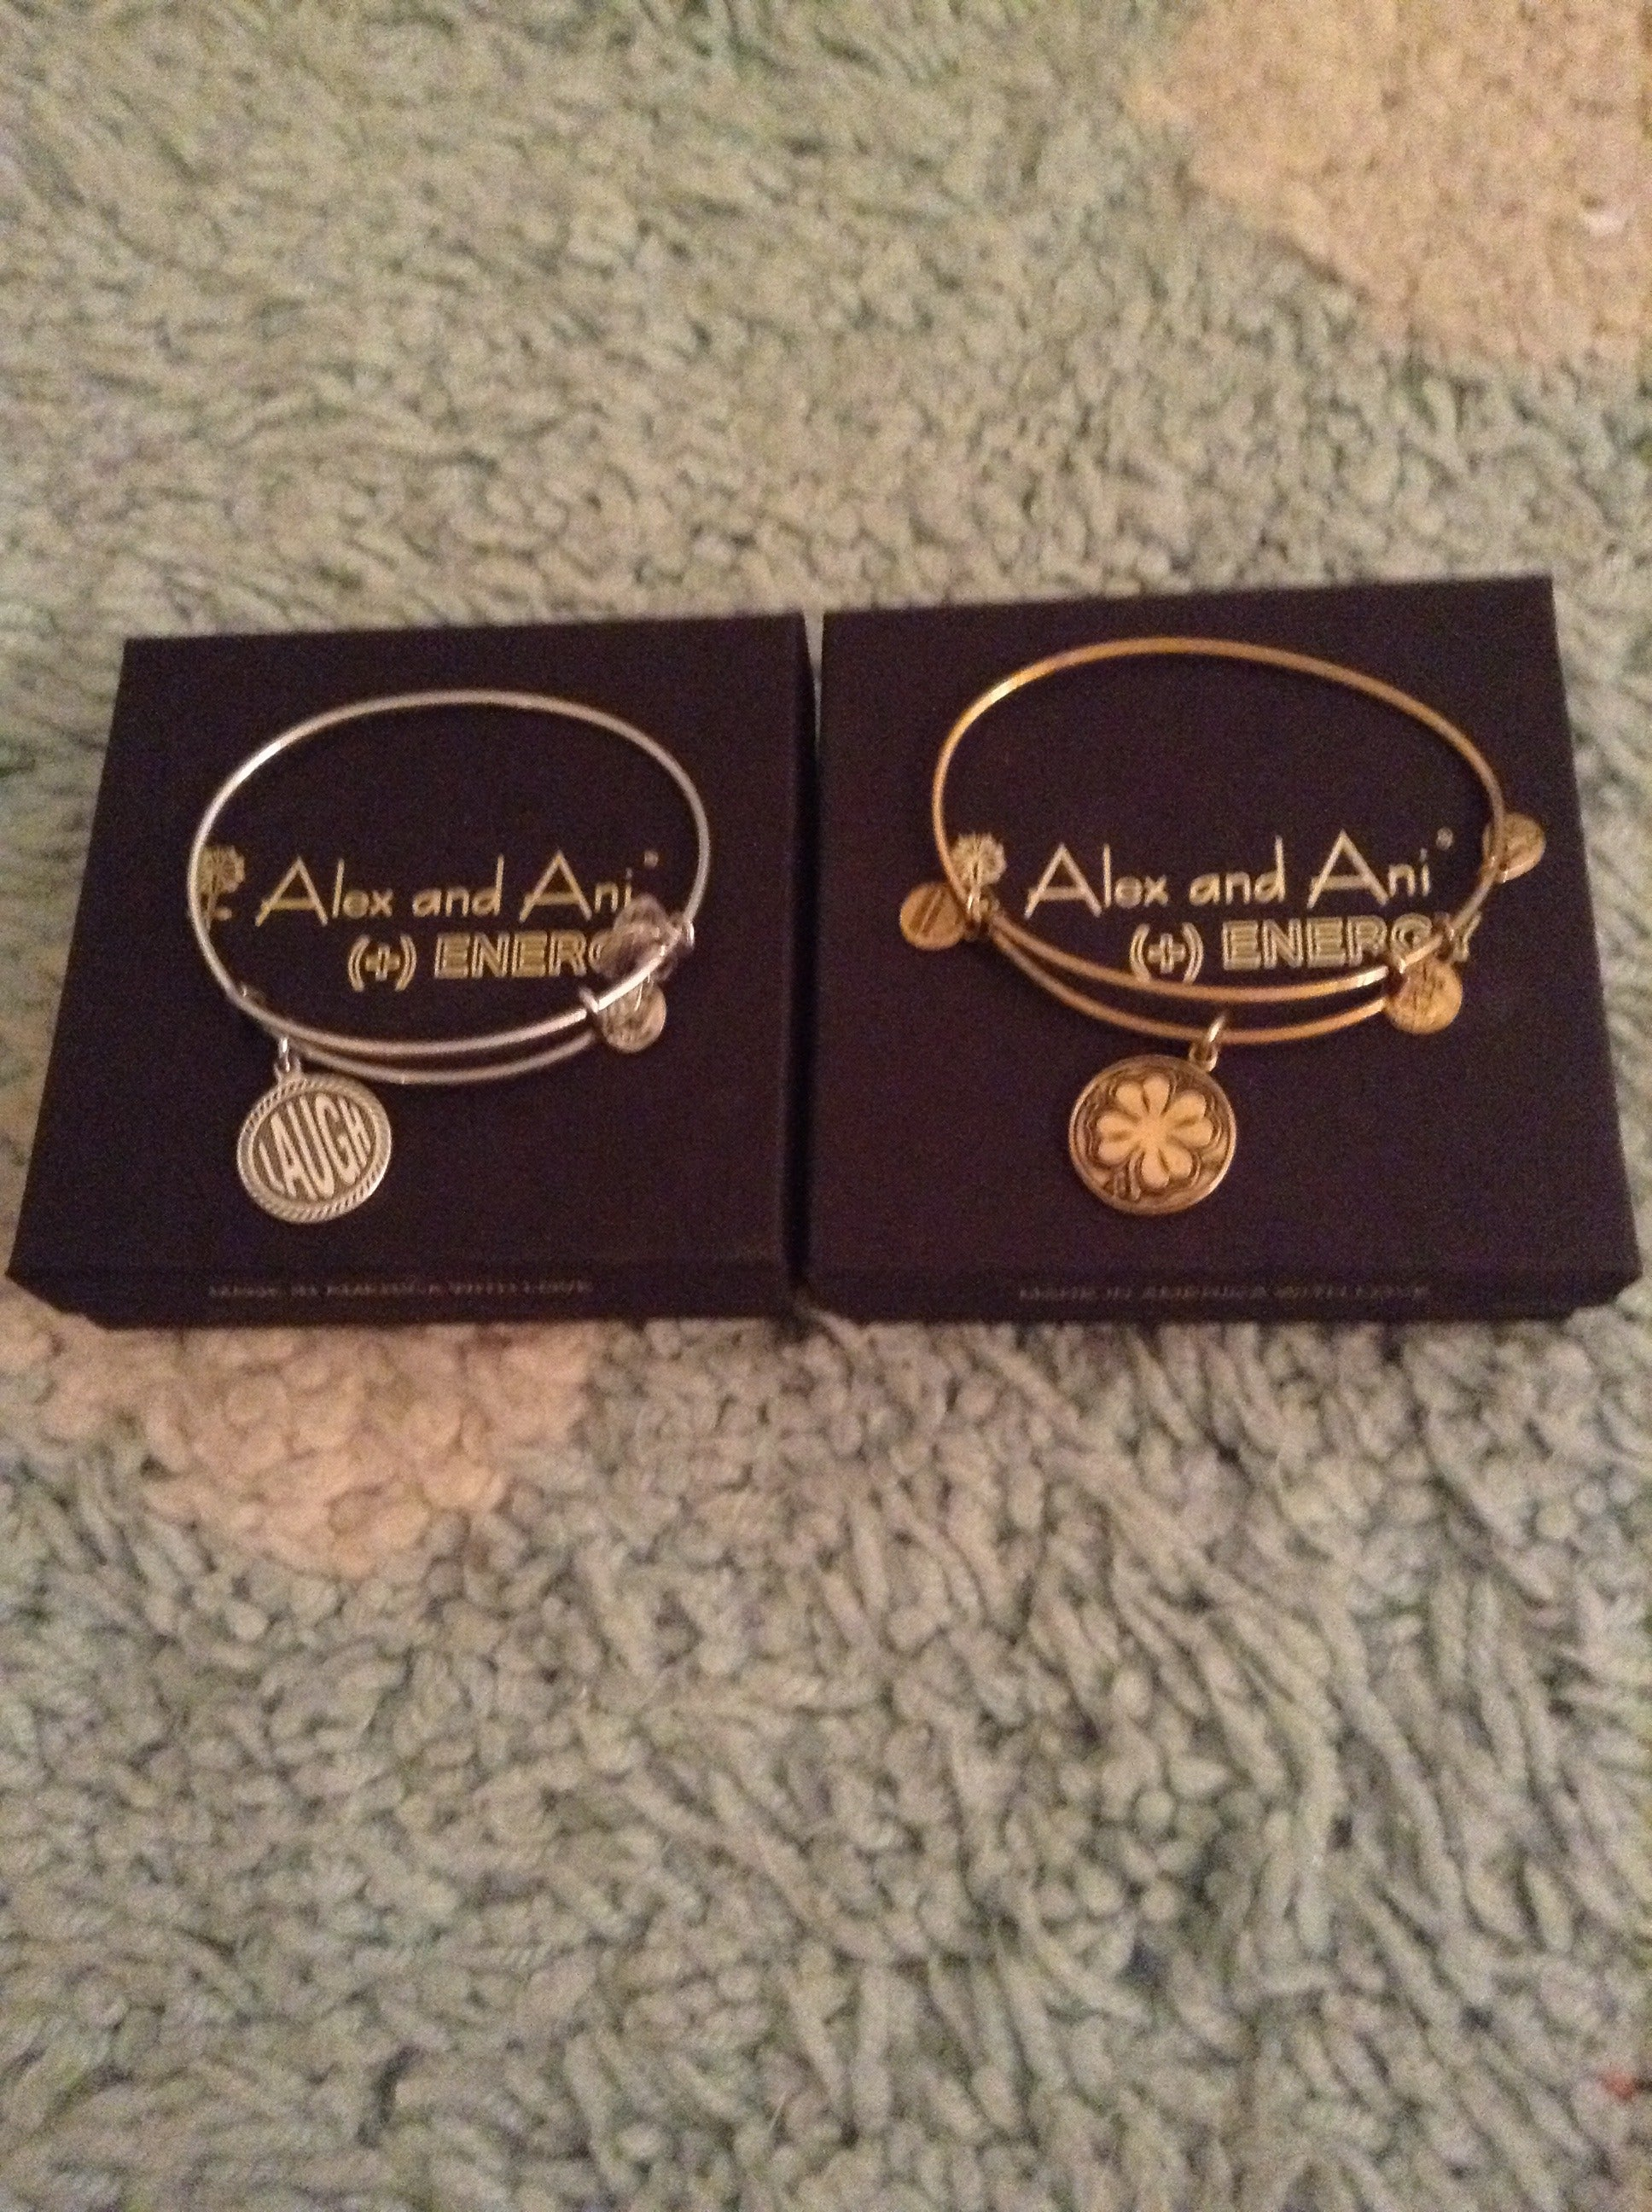 How to Clean Alex and Ani Bracelets 11 Steps